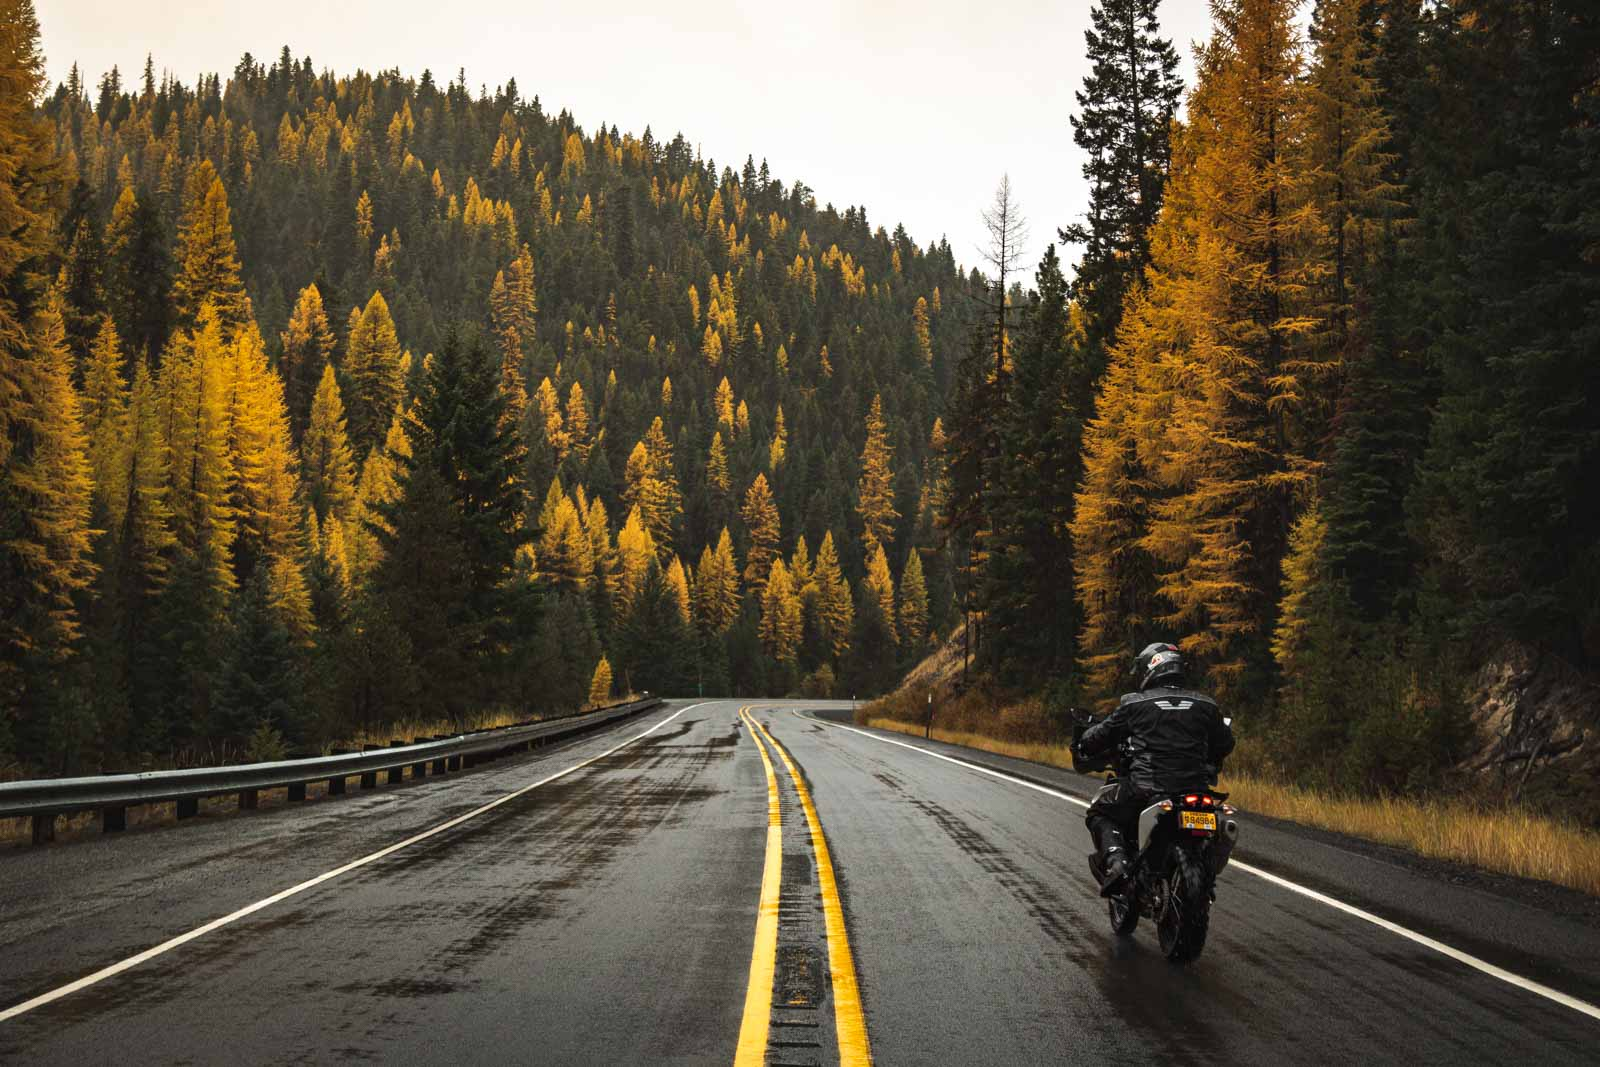 Garrett riding on pavement through the malheur national forest in Oregon